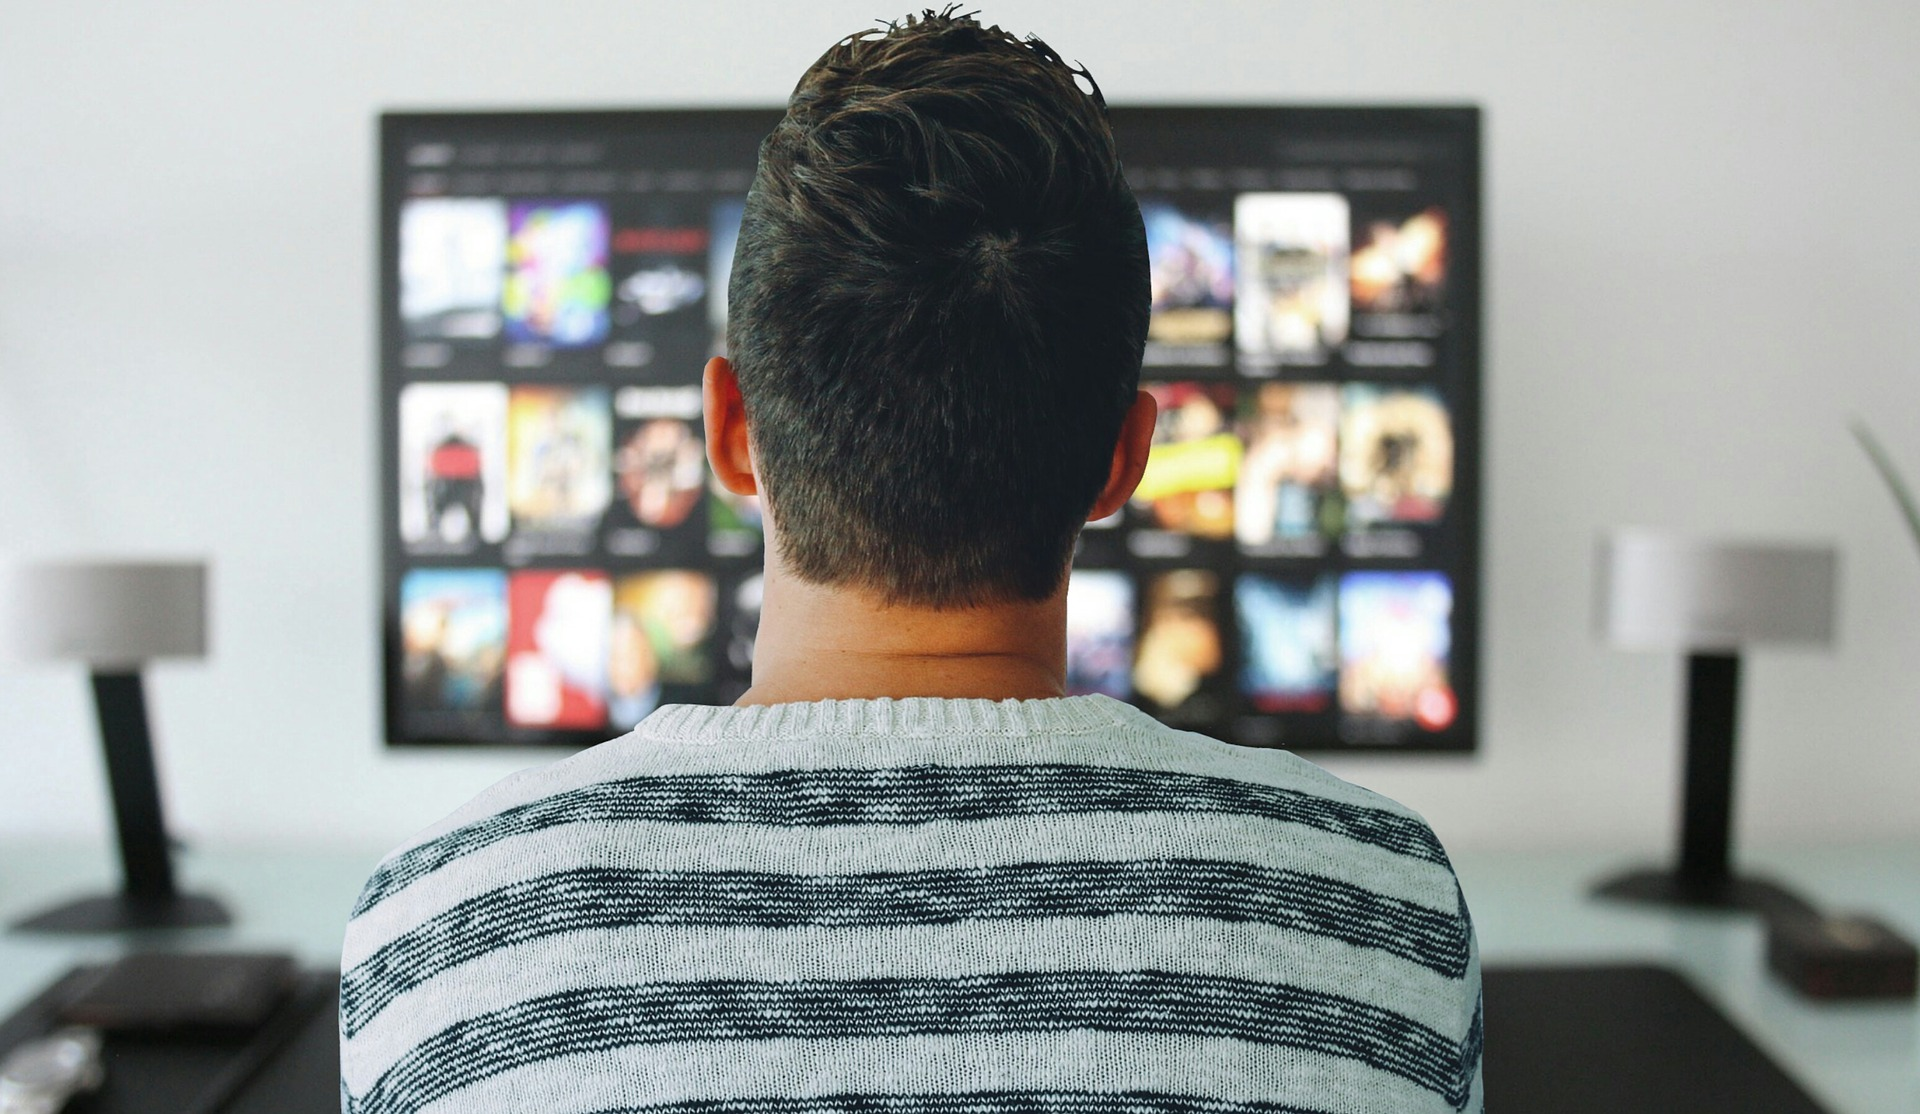 Top 4 ways to stream on your TV